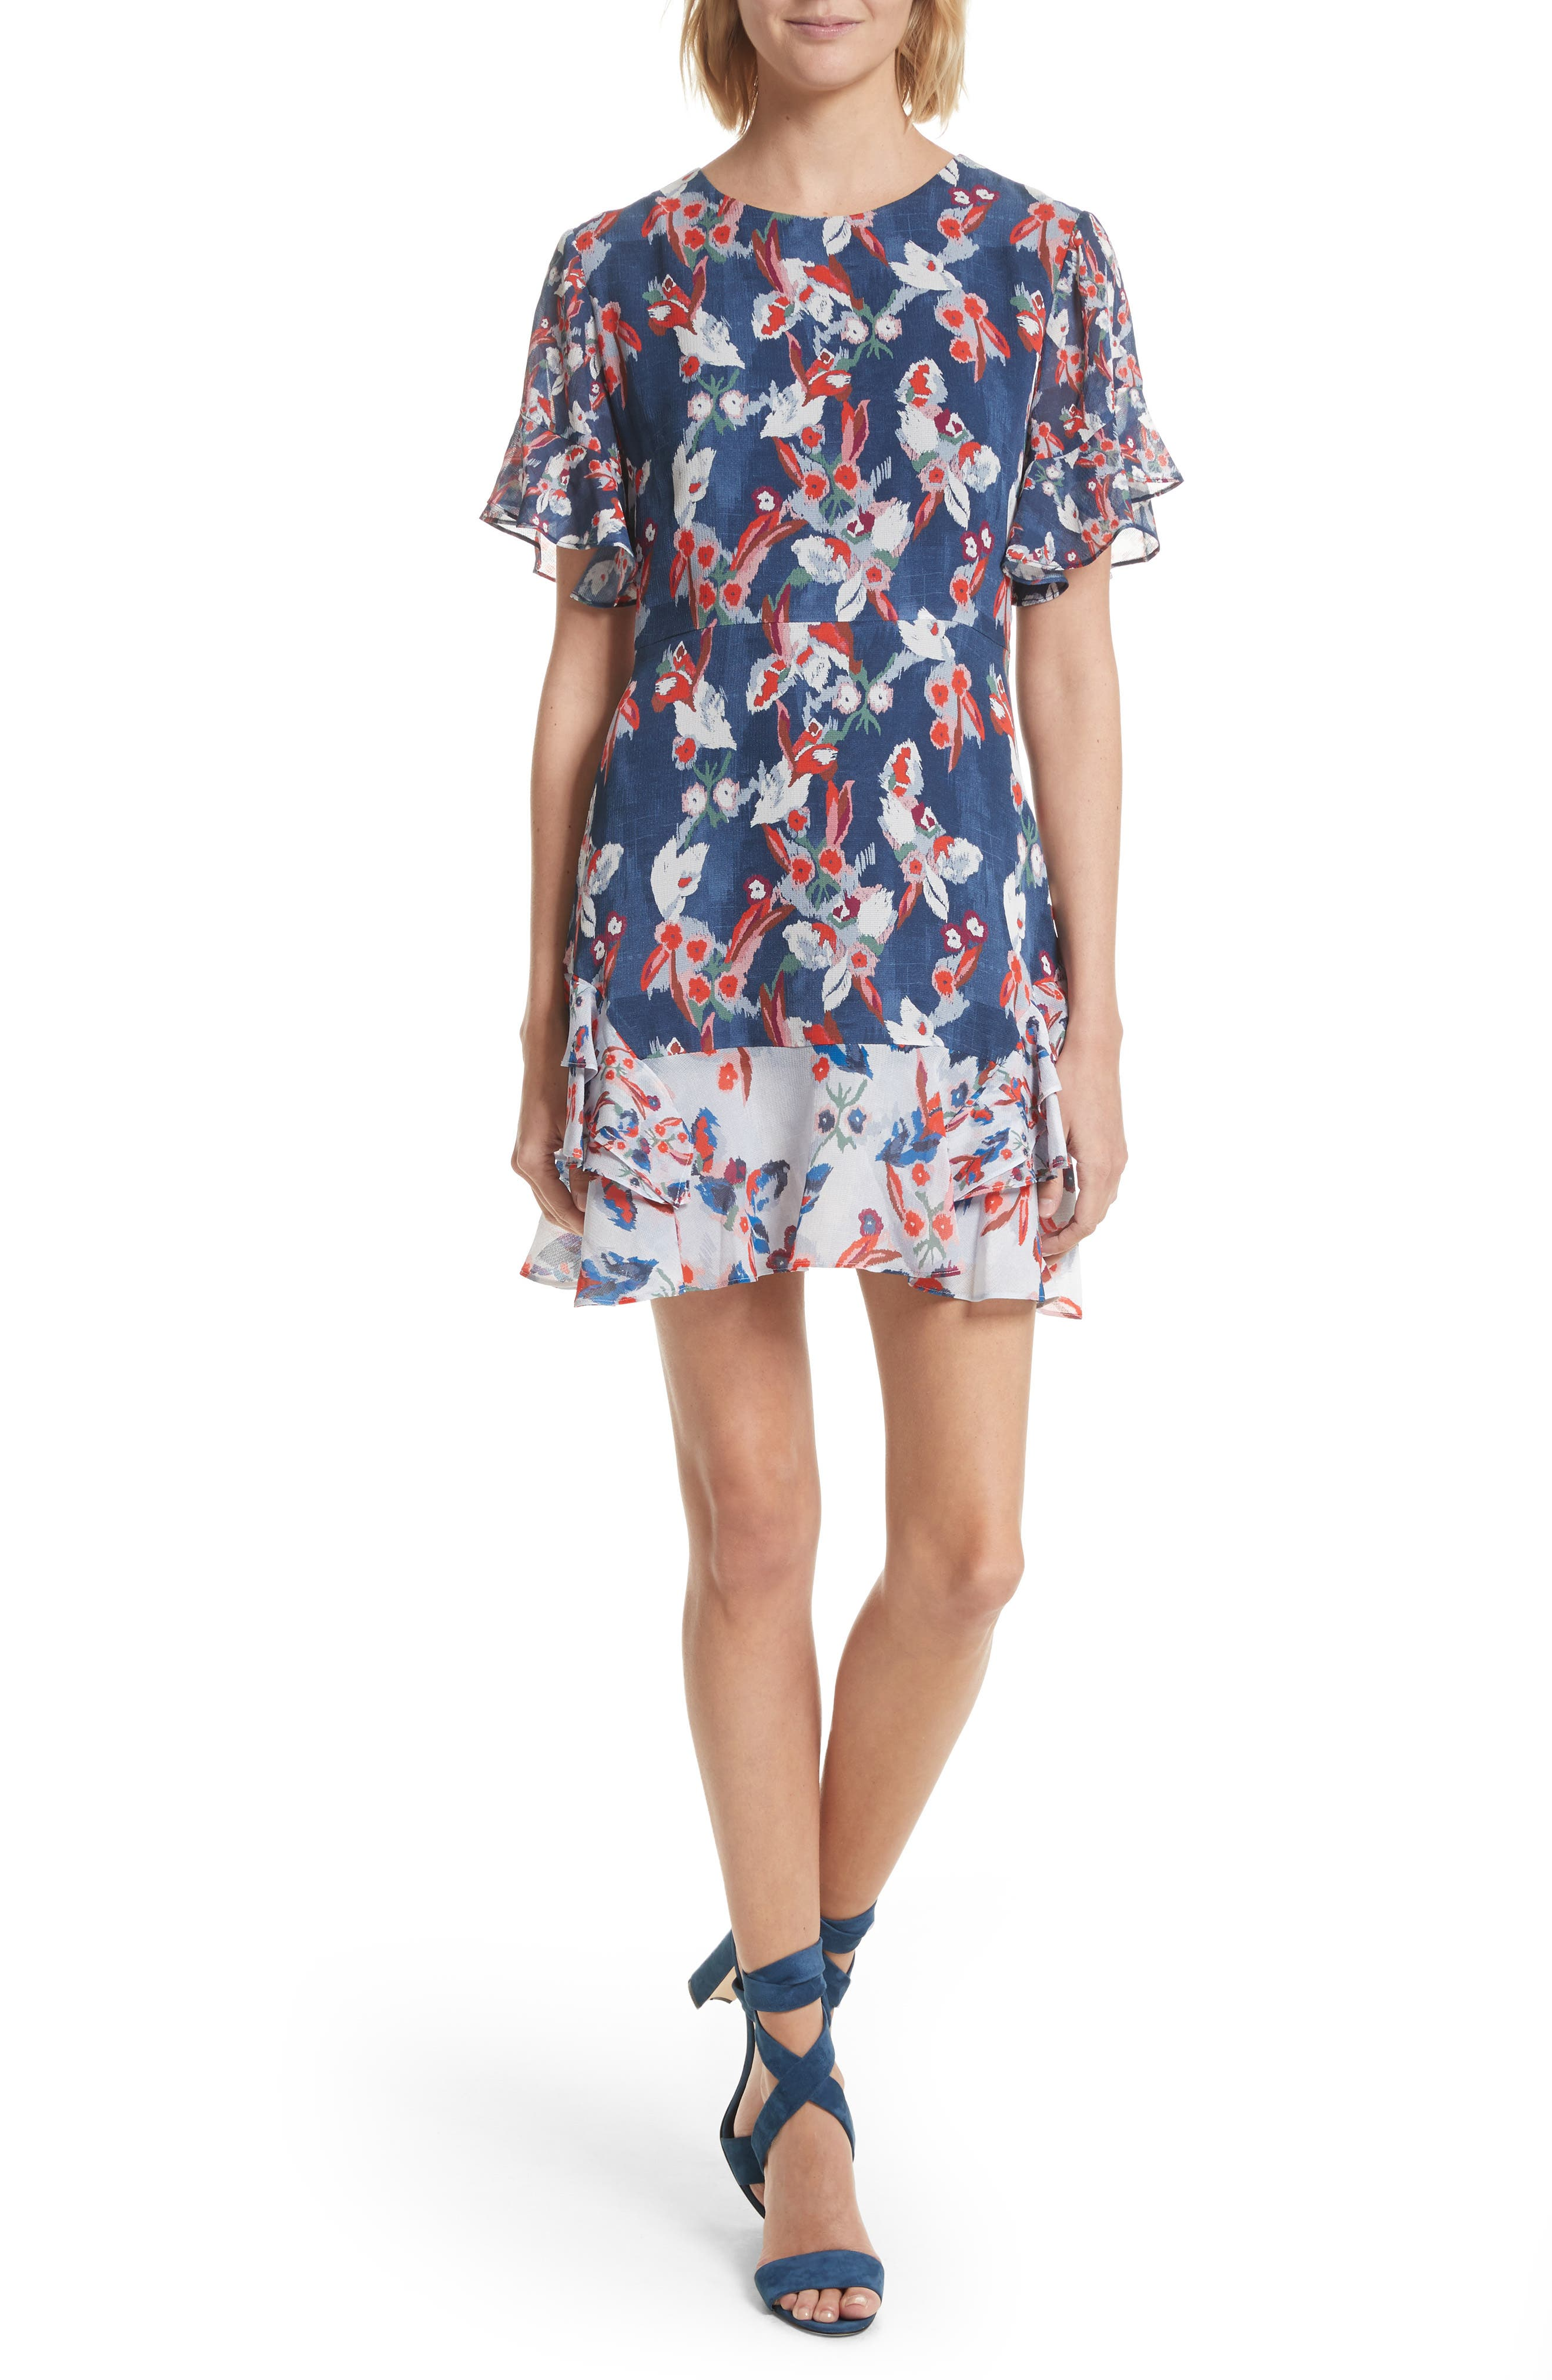 Tanya Taylor Lissy Floral Ikat Silk Dress